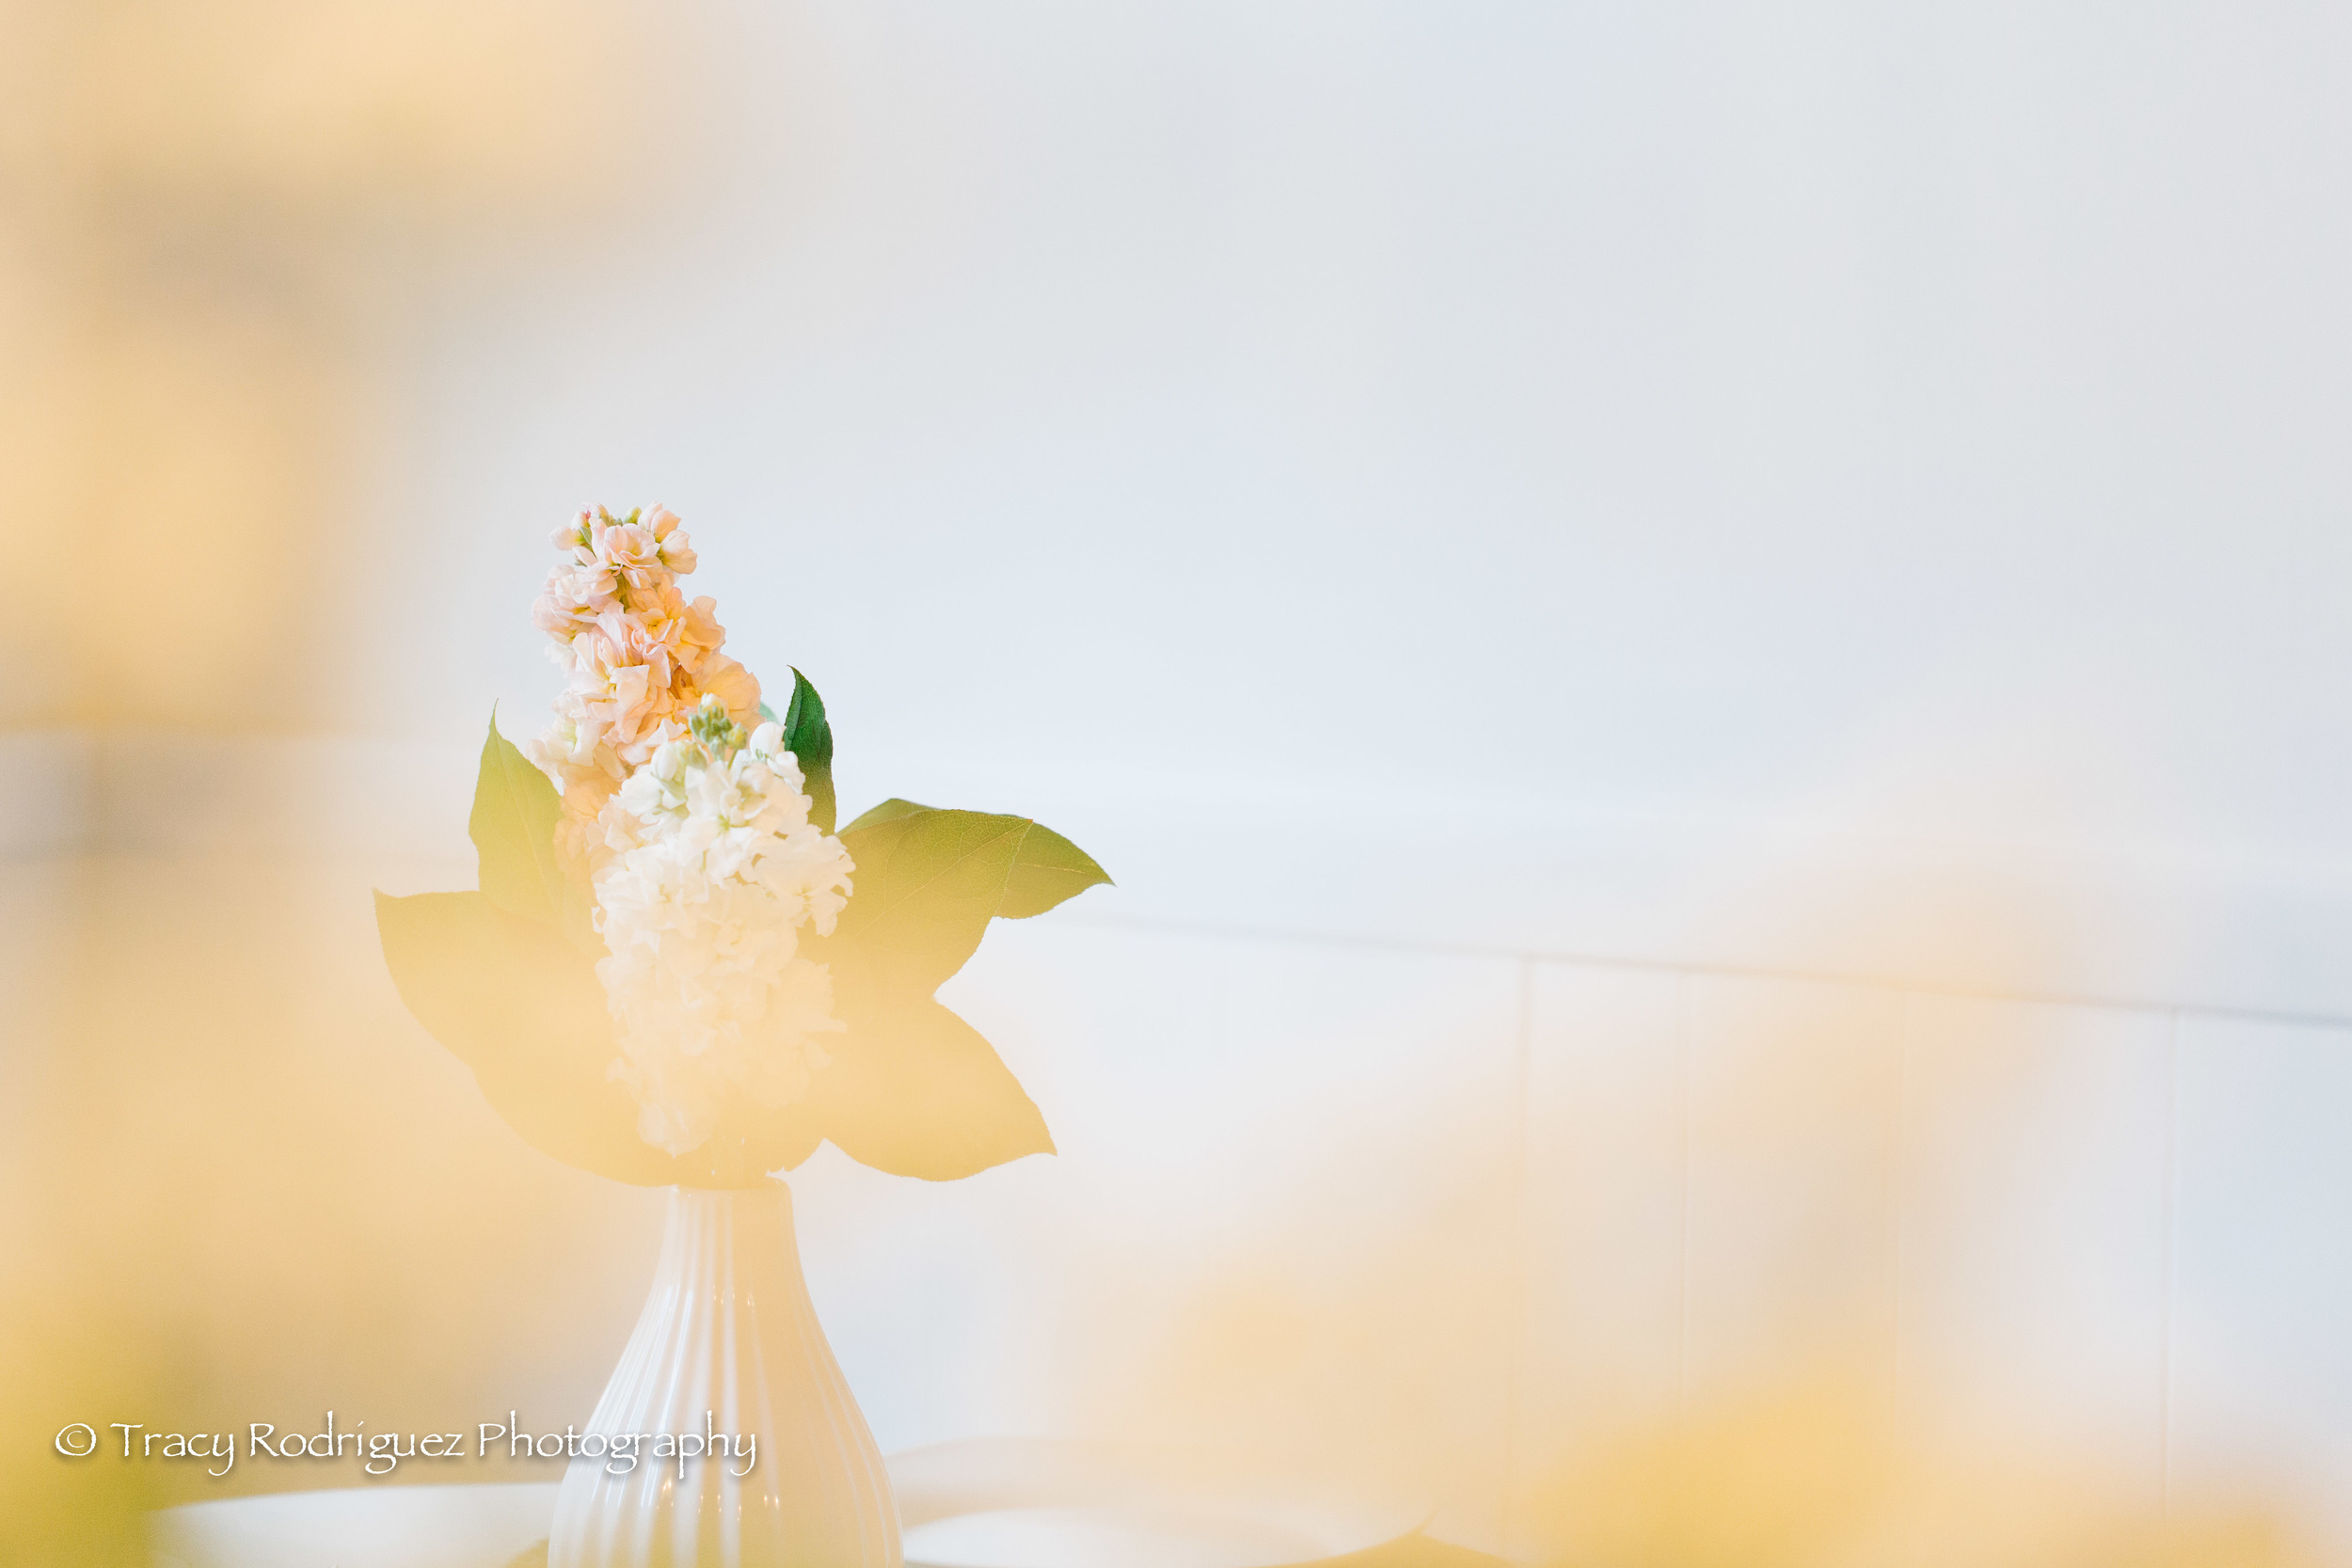 TracyRodriguezPhotography-LowRes-2.jpg